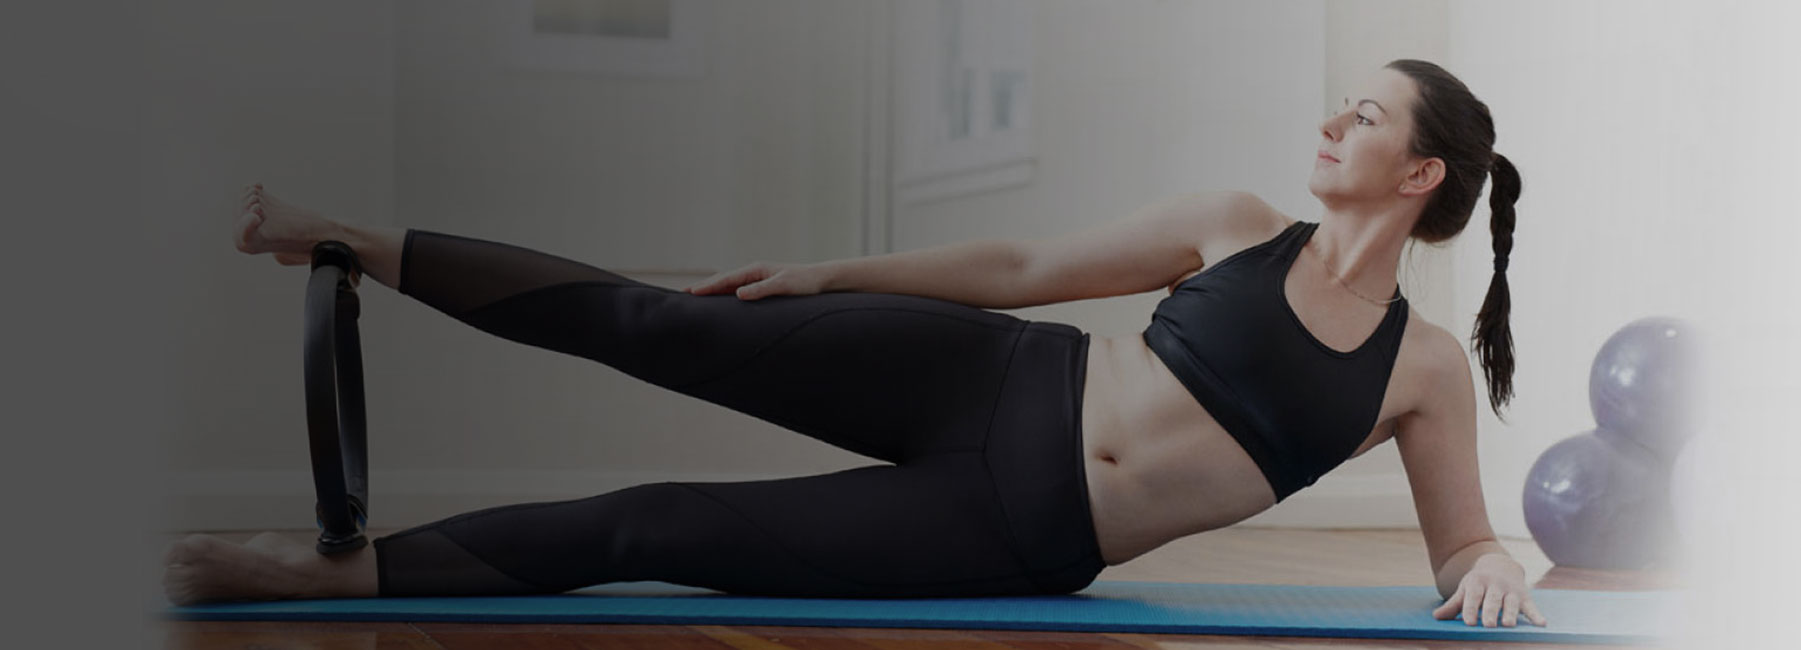 Body Reform Auckland Clinical Pilates Banner 2018